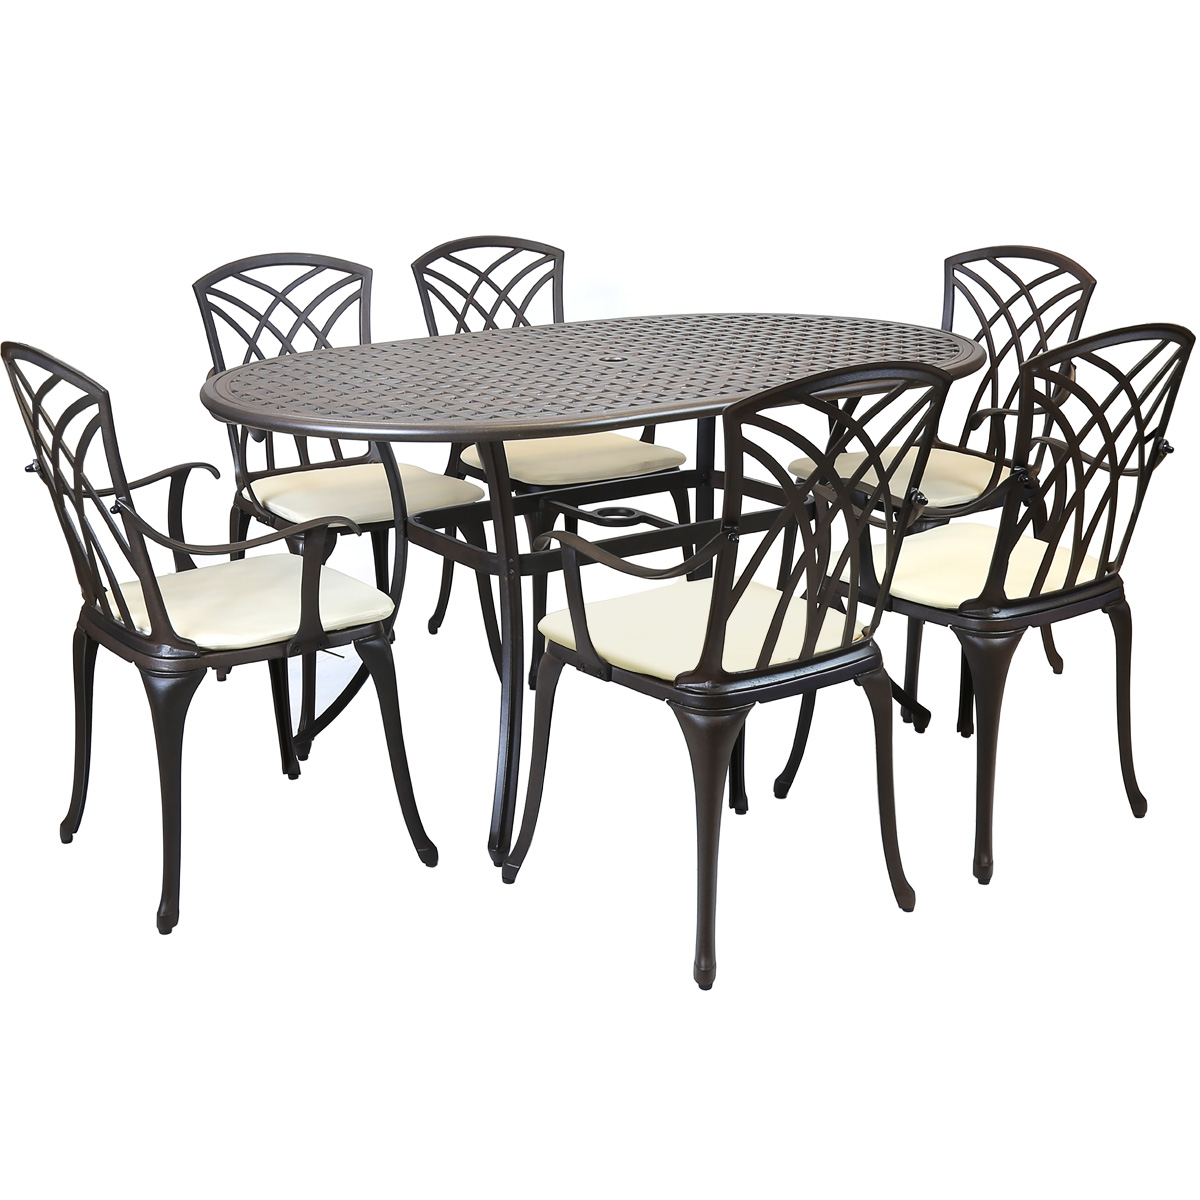 Garden Table And Chairs Metal Cast Aluminium 7 Piece Garden Furniture Table Patio